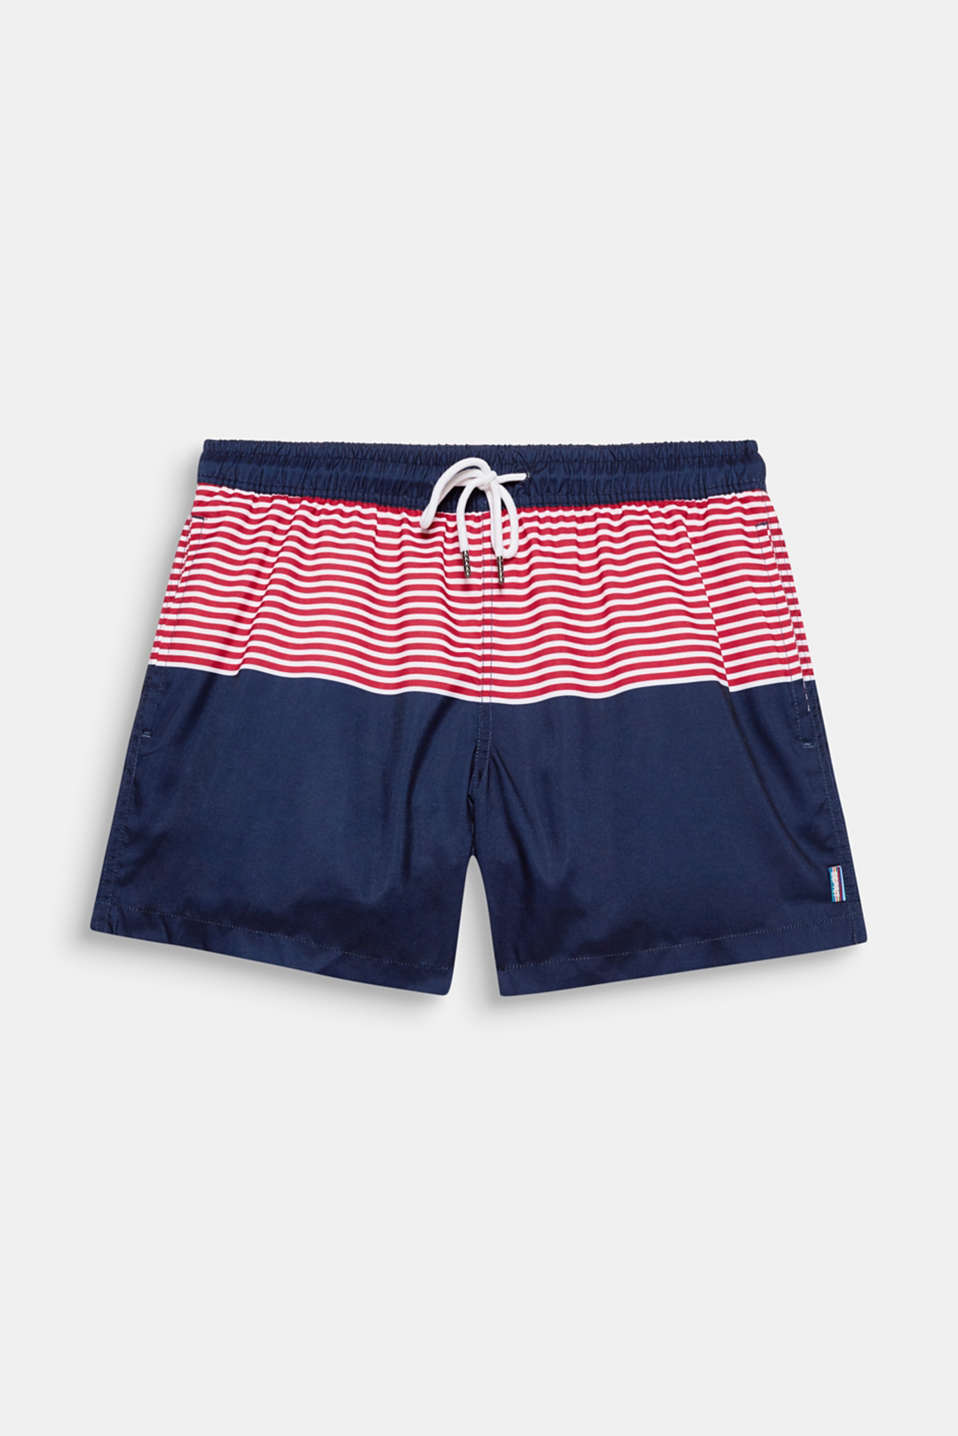 The mix of plain coloured blocks with two-tone contrasting stripes gives these swim shorts a sporty look!